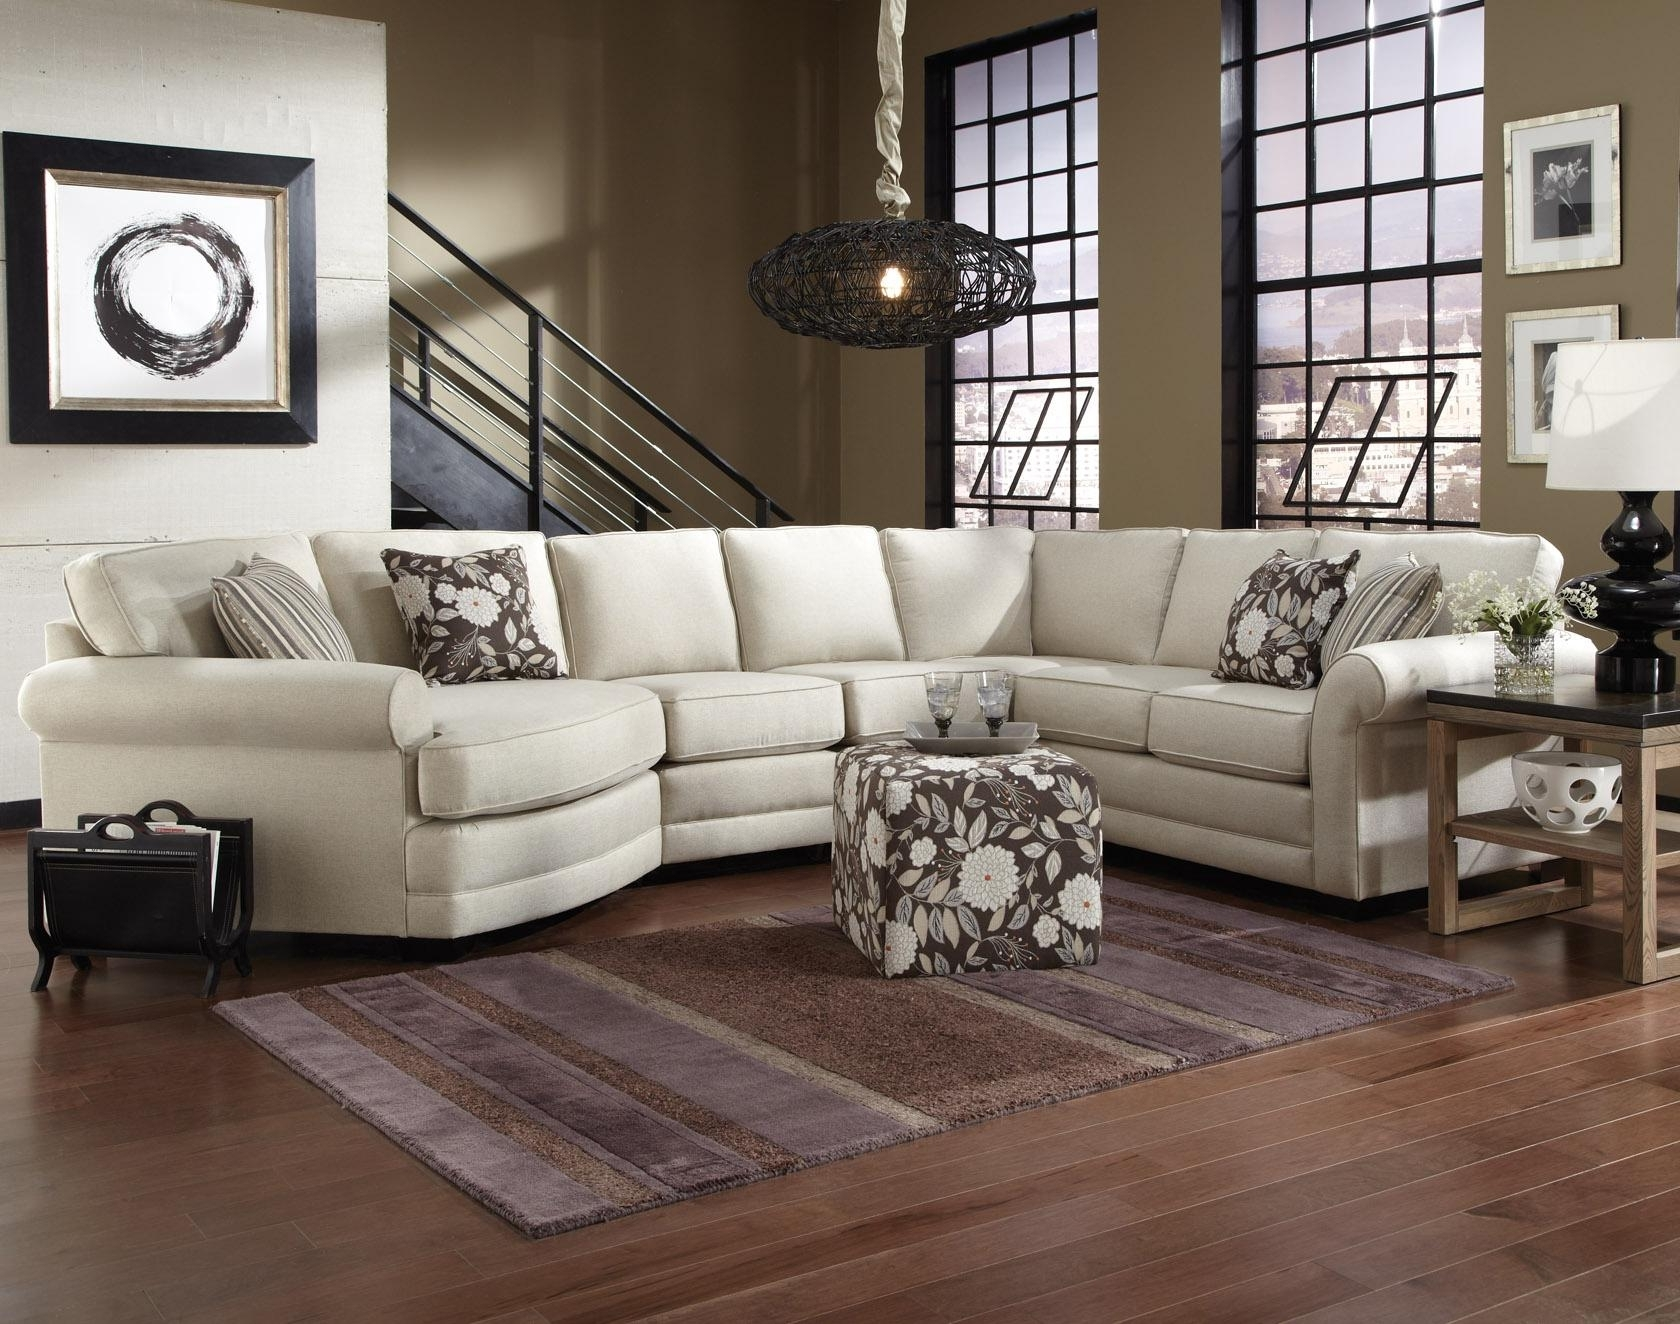 England Brantley 5 Seat Sectional Sofa With Cuddler – Ahfa – Sofa For Most Popular Little Rock Ar Sectional Sofas (View 6 of 15)